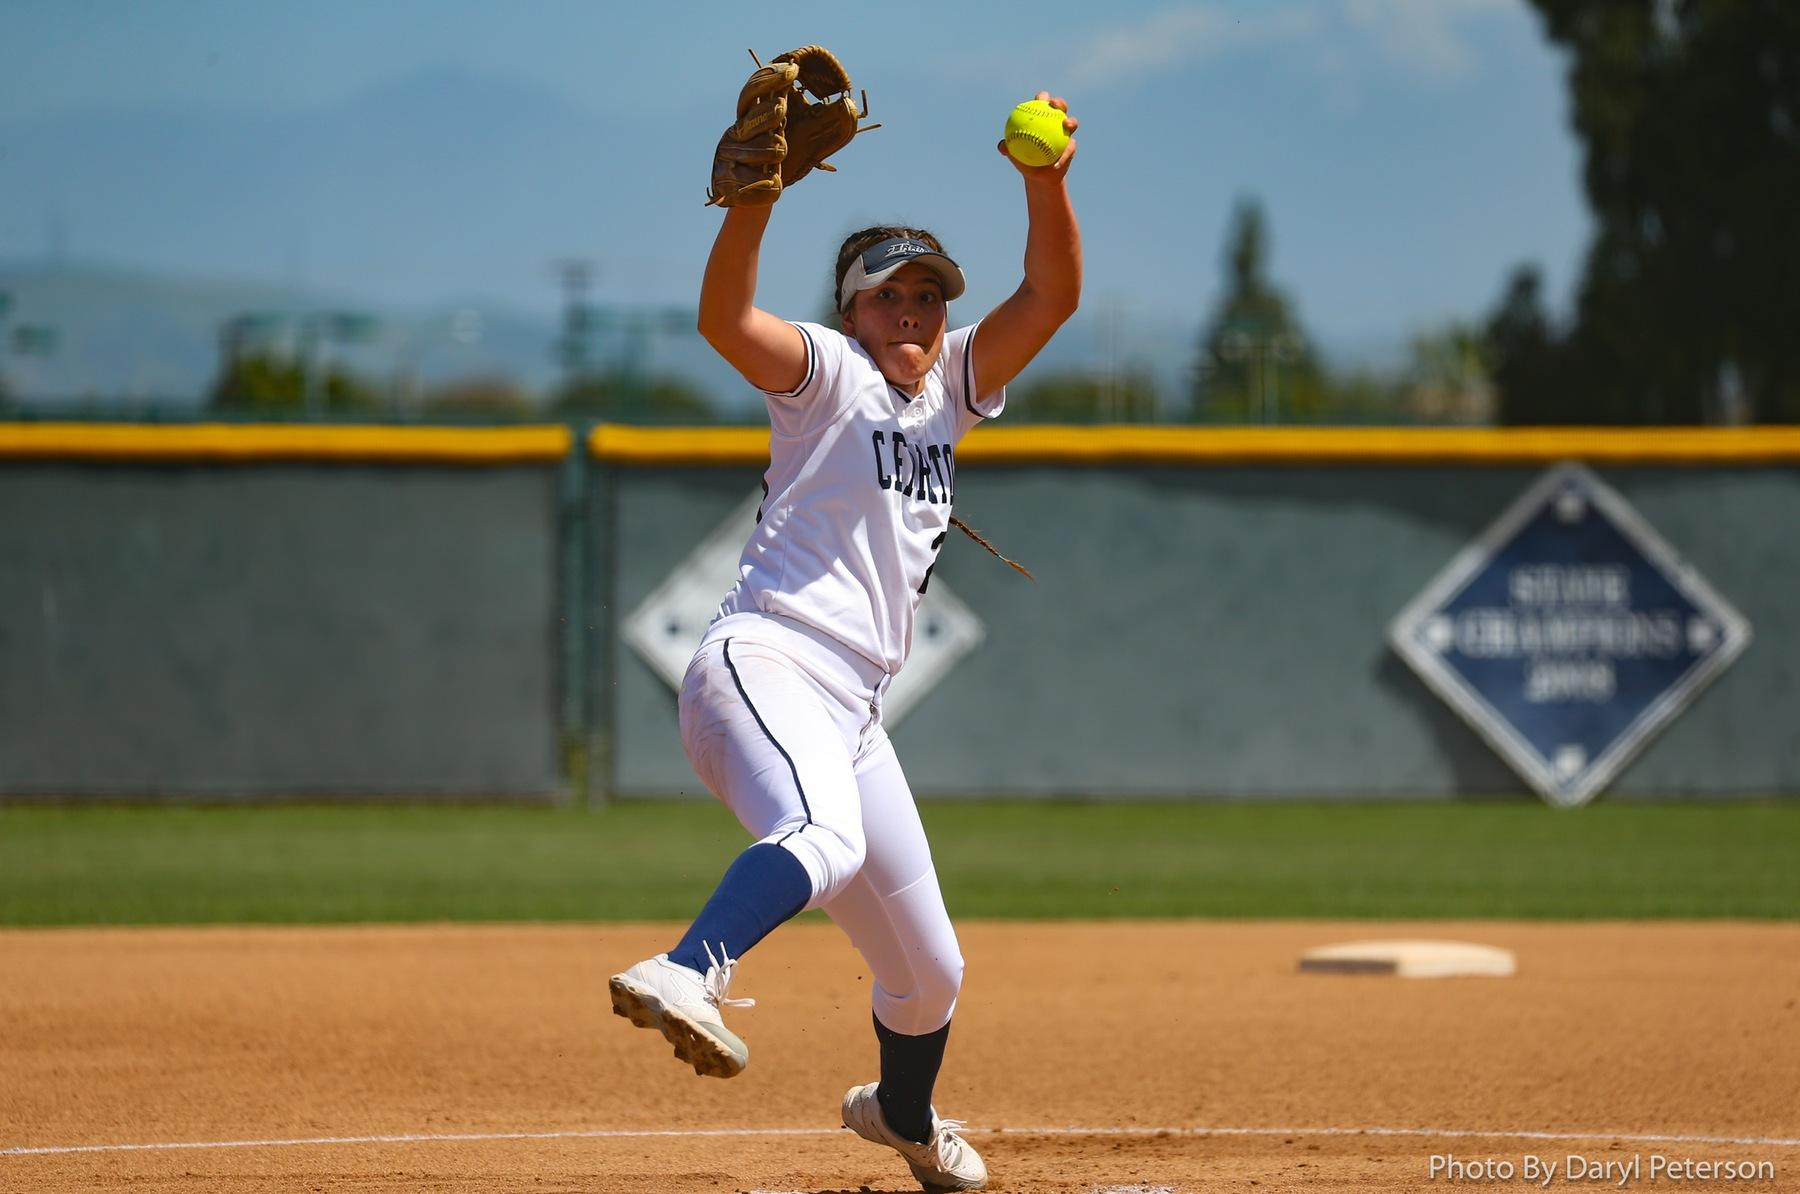 File Photo: Sierra Gerdts pitched a complete game against El Camino